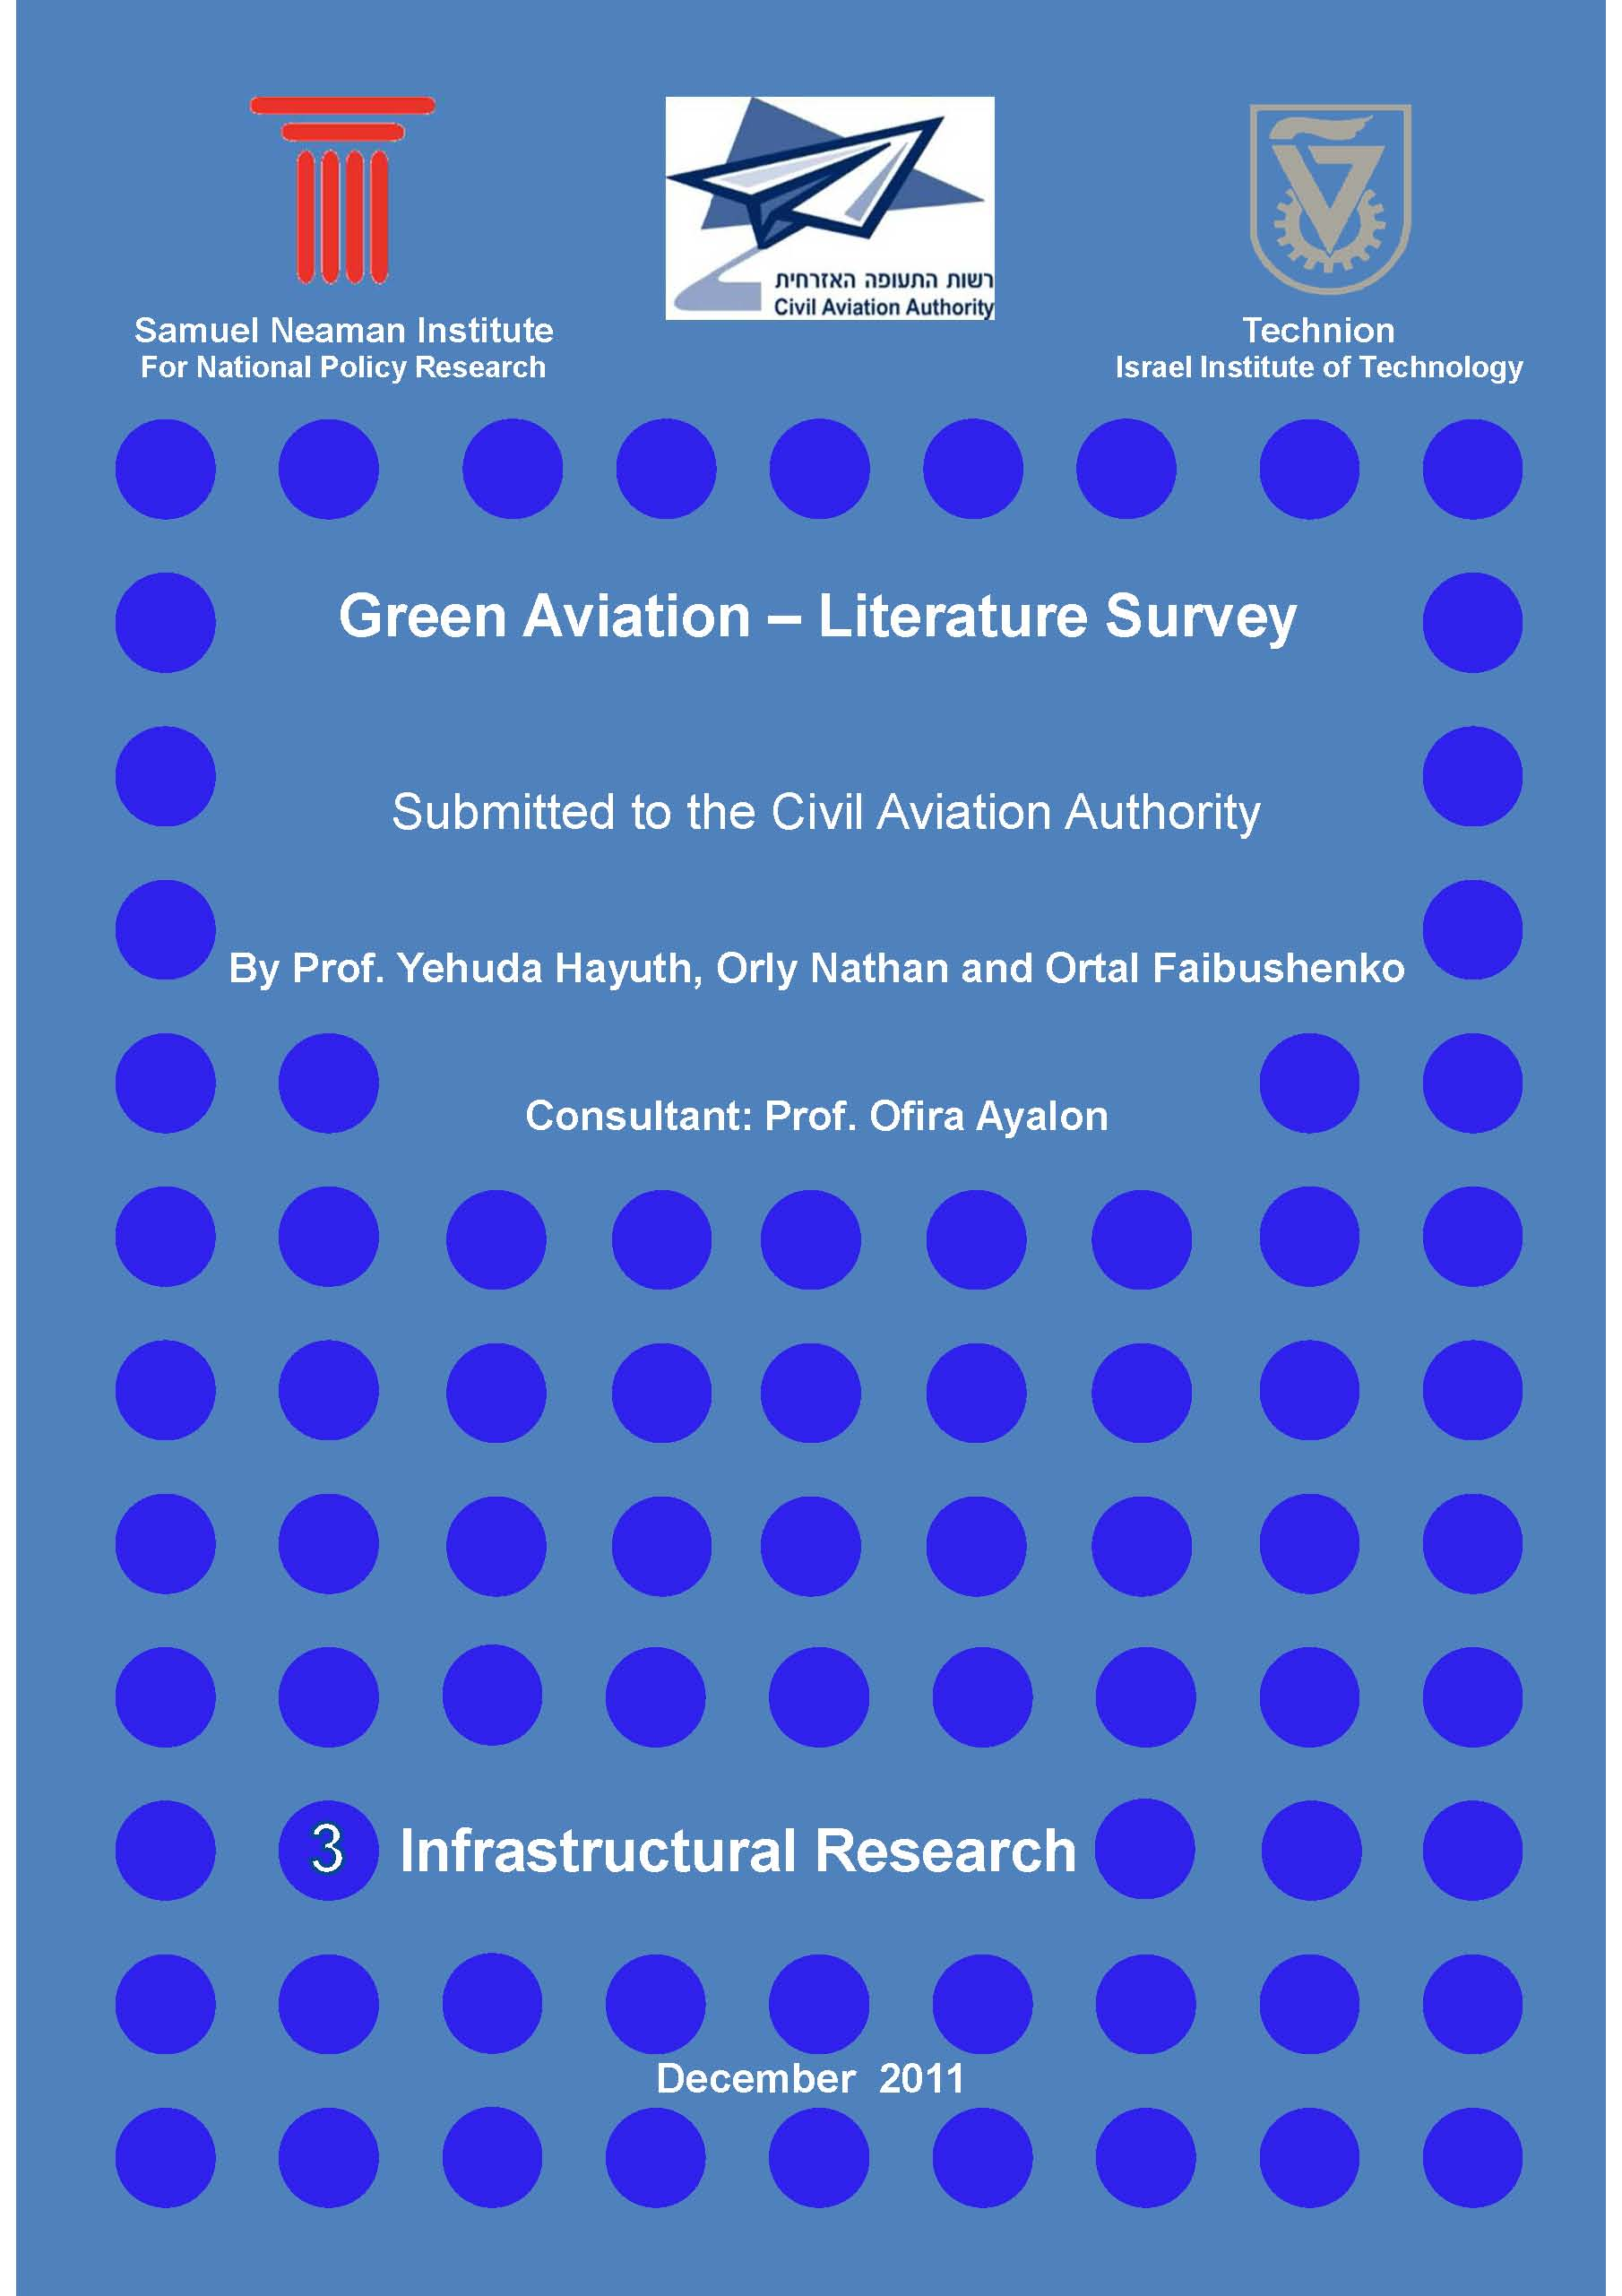 Green Aviation - Literature Survey